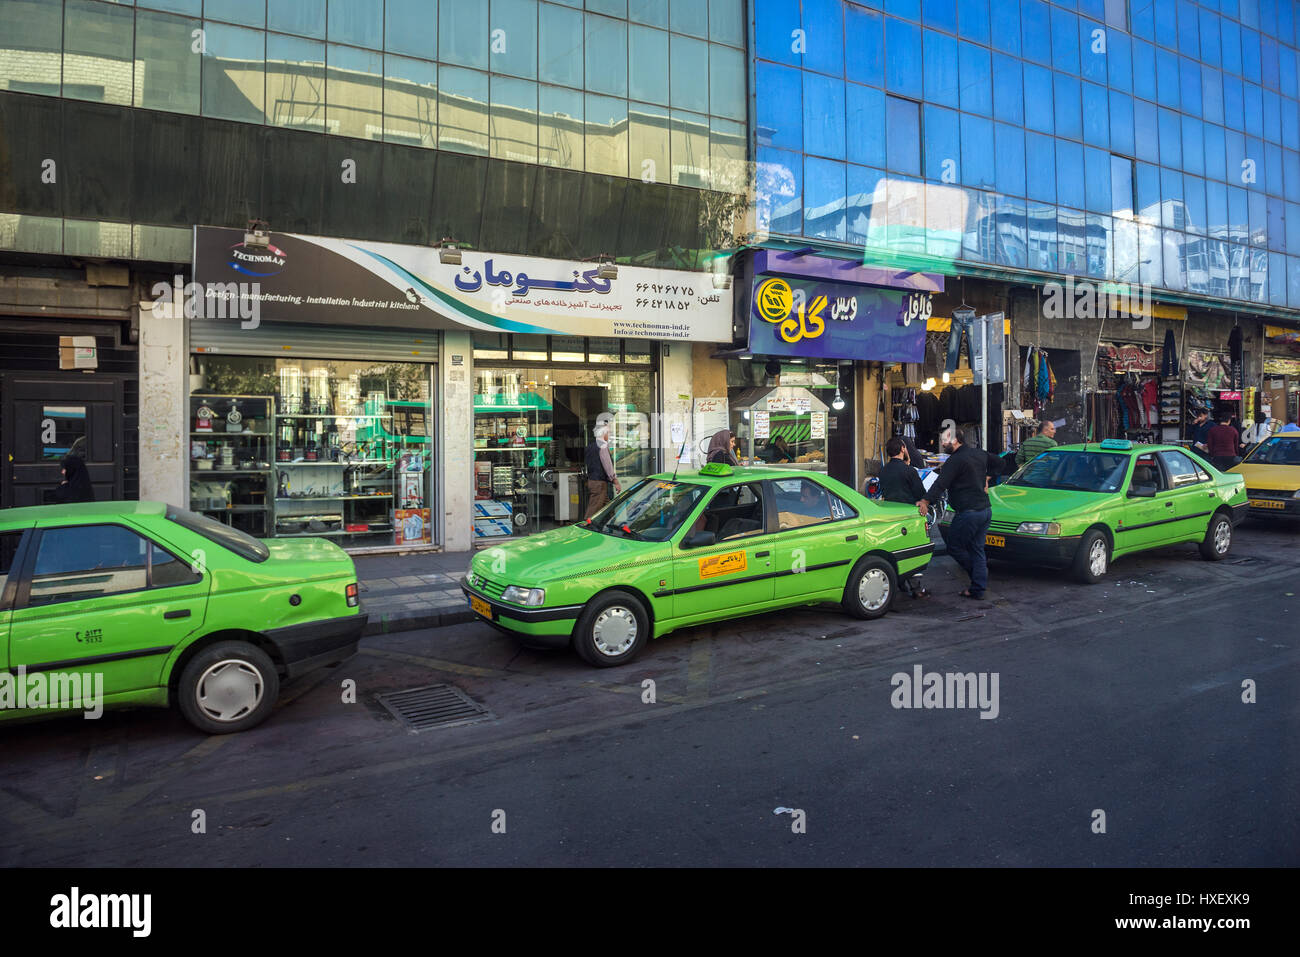 Green taxi cars in Tehran city, capital of Iran and Tehran Province - Stock Image